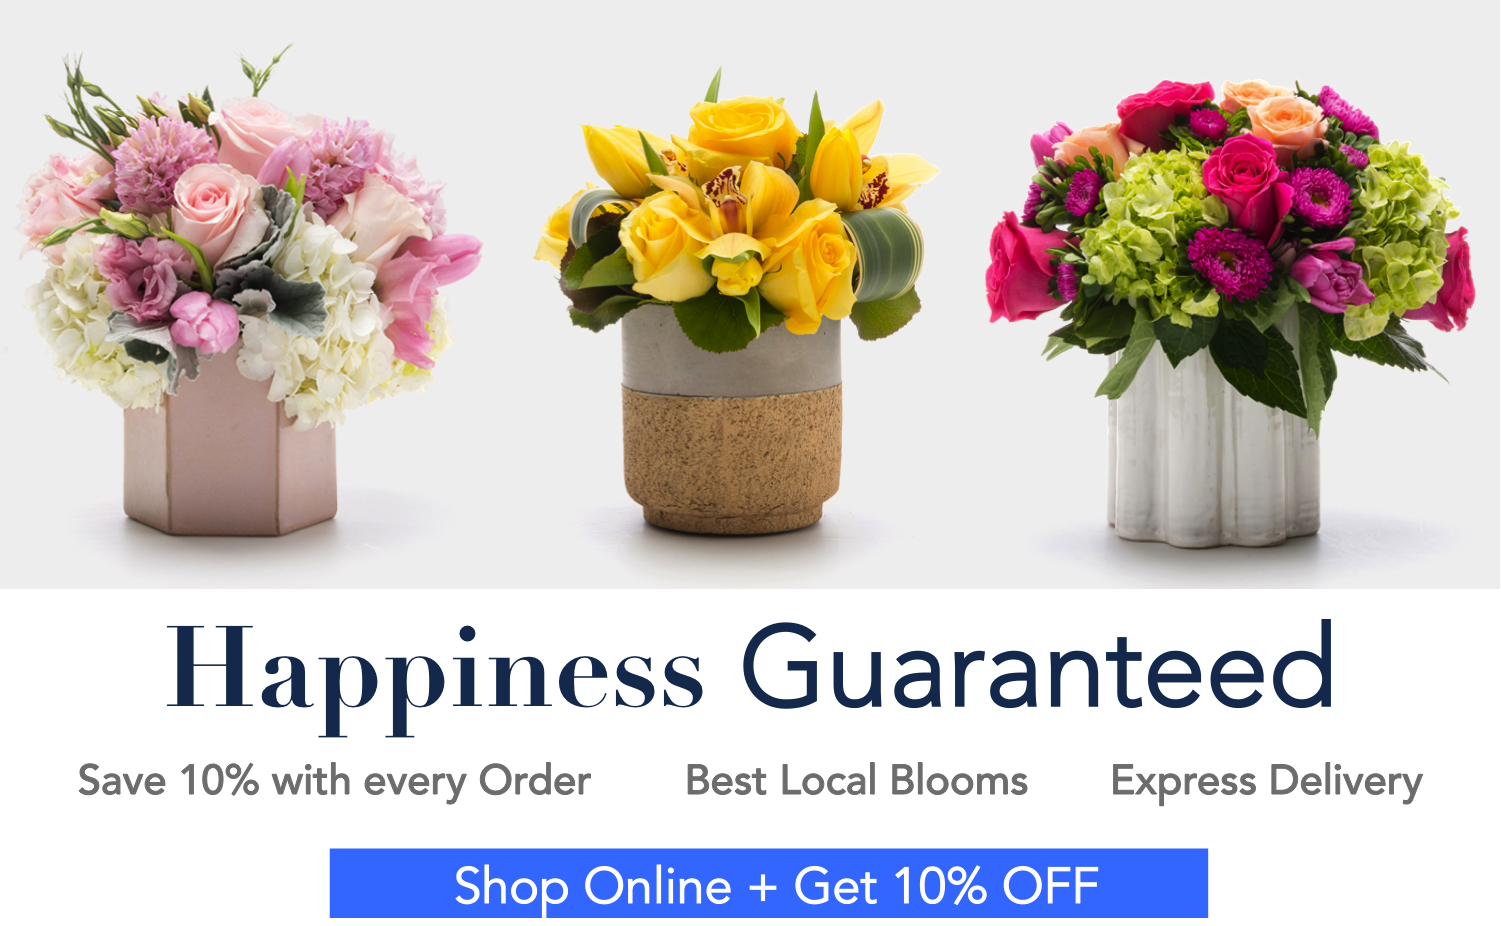 0-angies-floral-designbirthday-79912-handcrafted-gifts-same-day-delivery-roses-flowershop-el-paso-texas-79912-shop-online-flowers-florist-best-florist.png